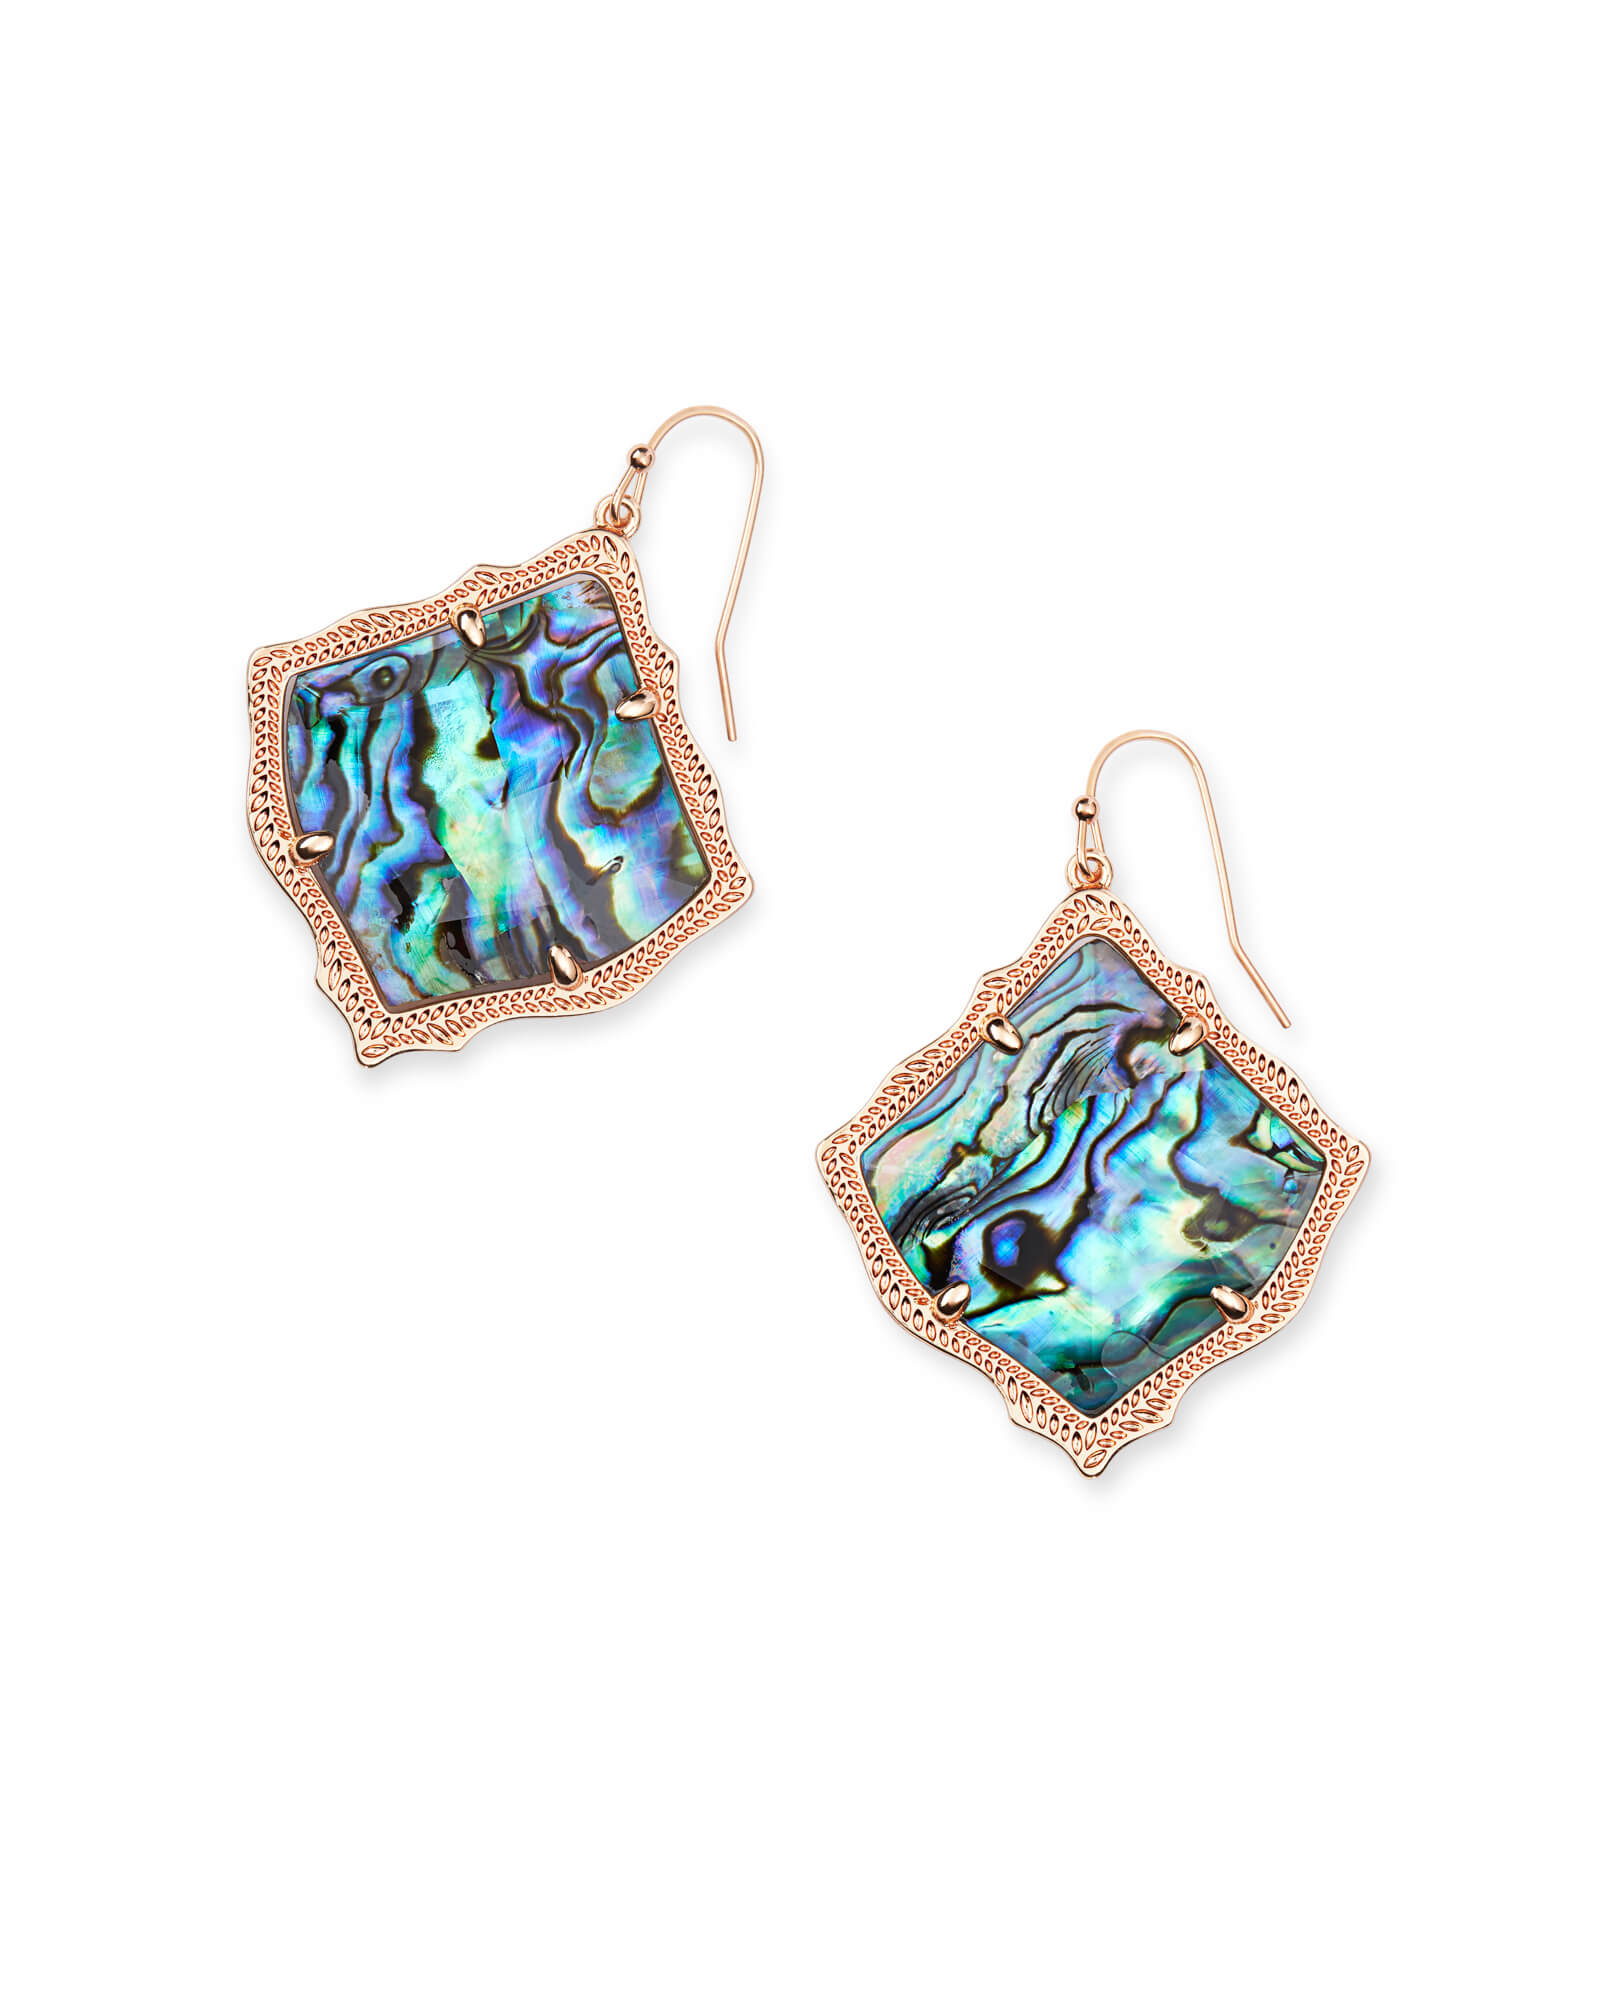 Kirsten Rose Gold Drop Earrings in Abalone Shell